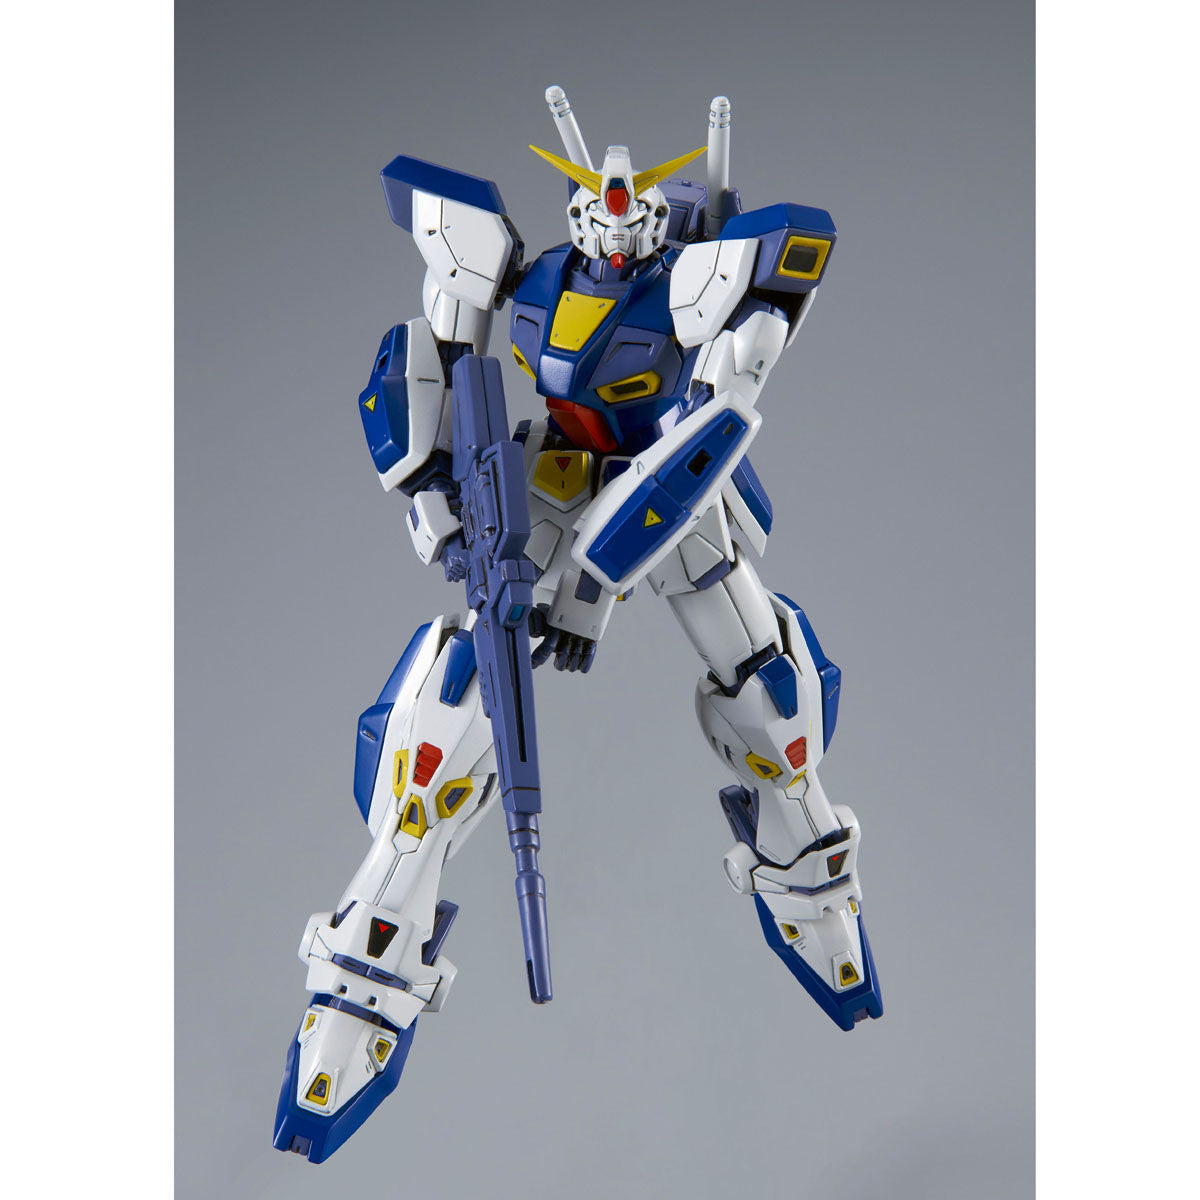 MG 1/100 Gundam F90 (April & May Ship Date)